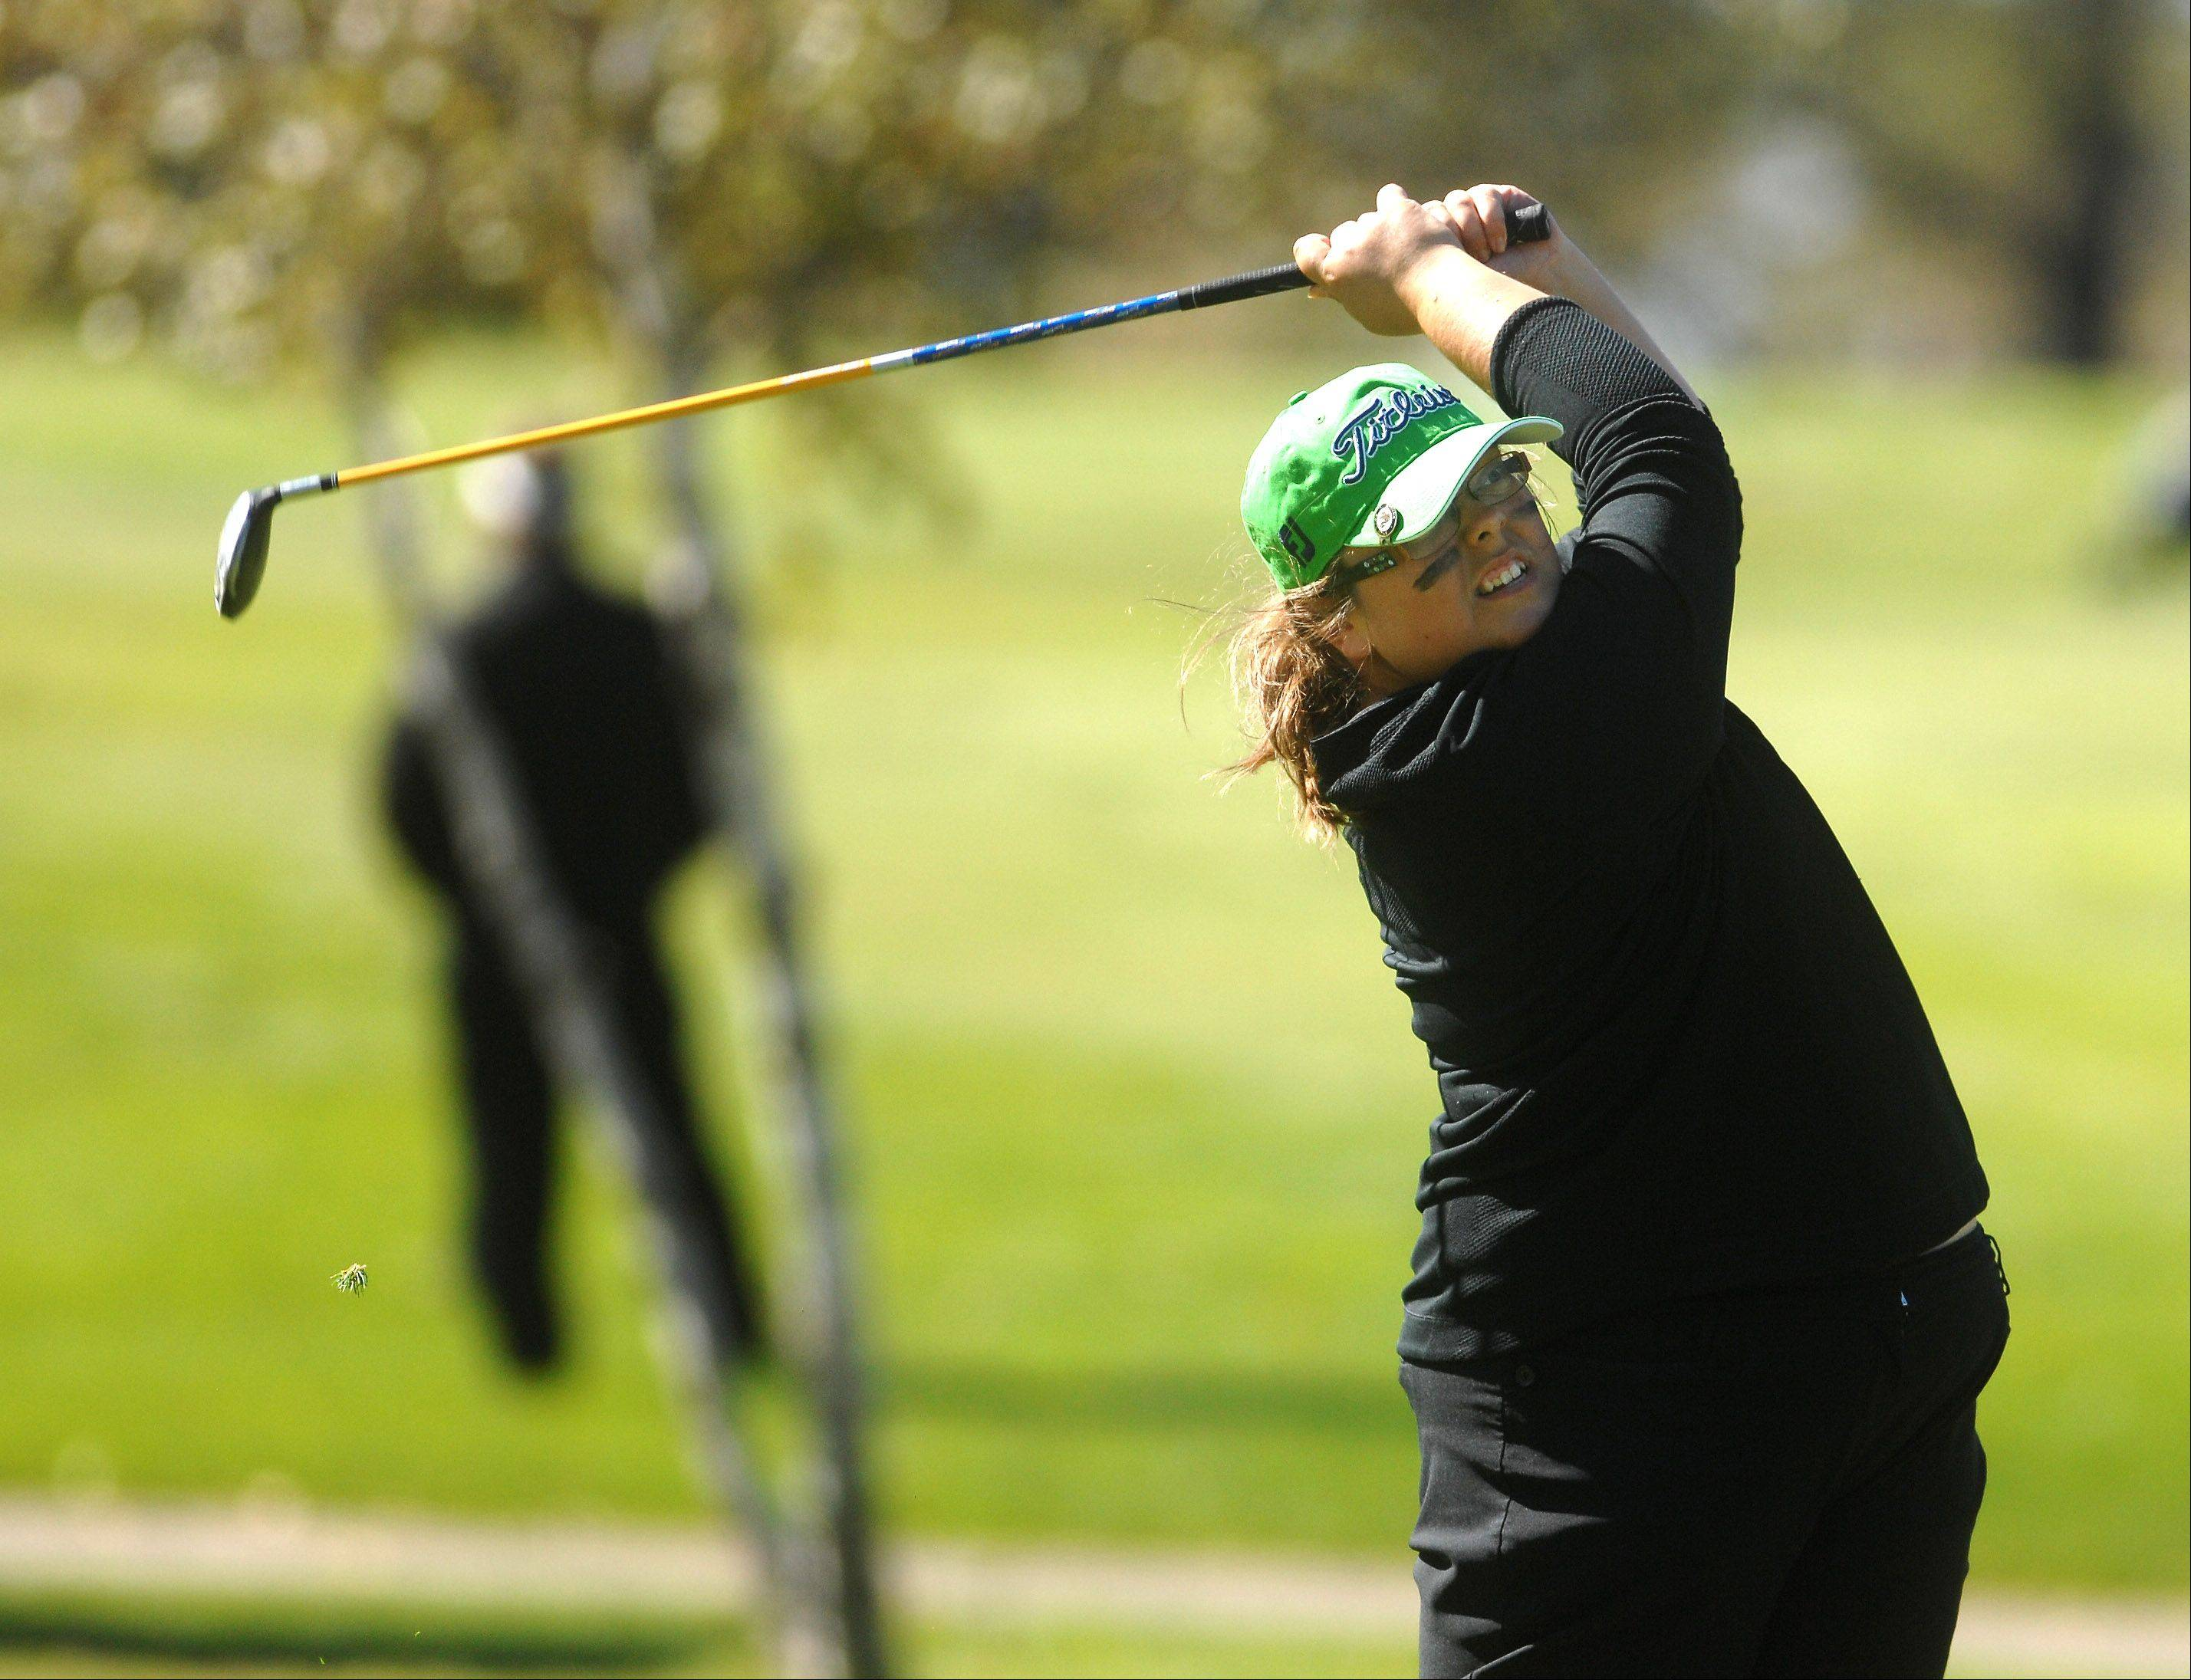 Batavia's Lauren Anderson hits a tee shot on a par 3 during Monday's Upstate Eight Conference girls golf tournament at St. Andrews Golf & Country Club in West Chicago.